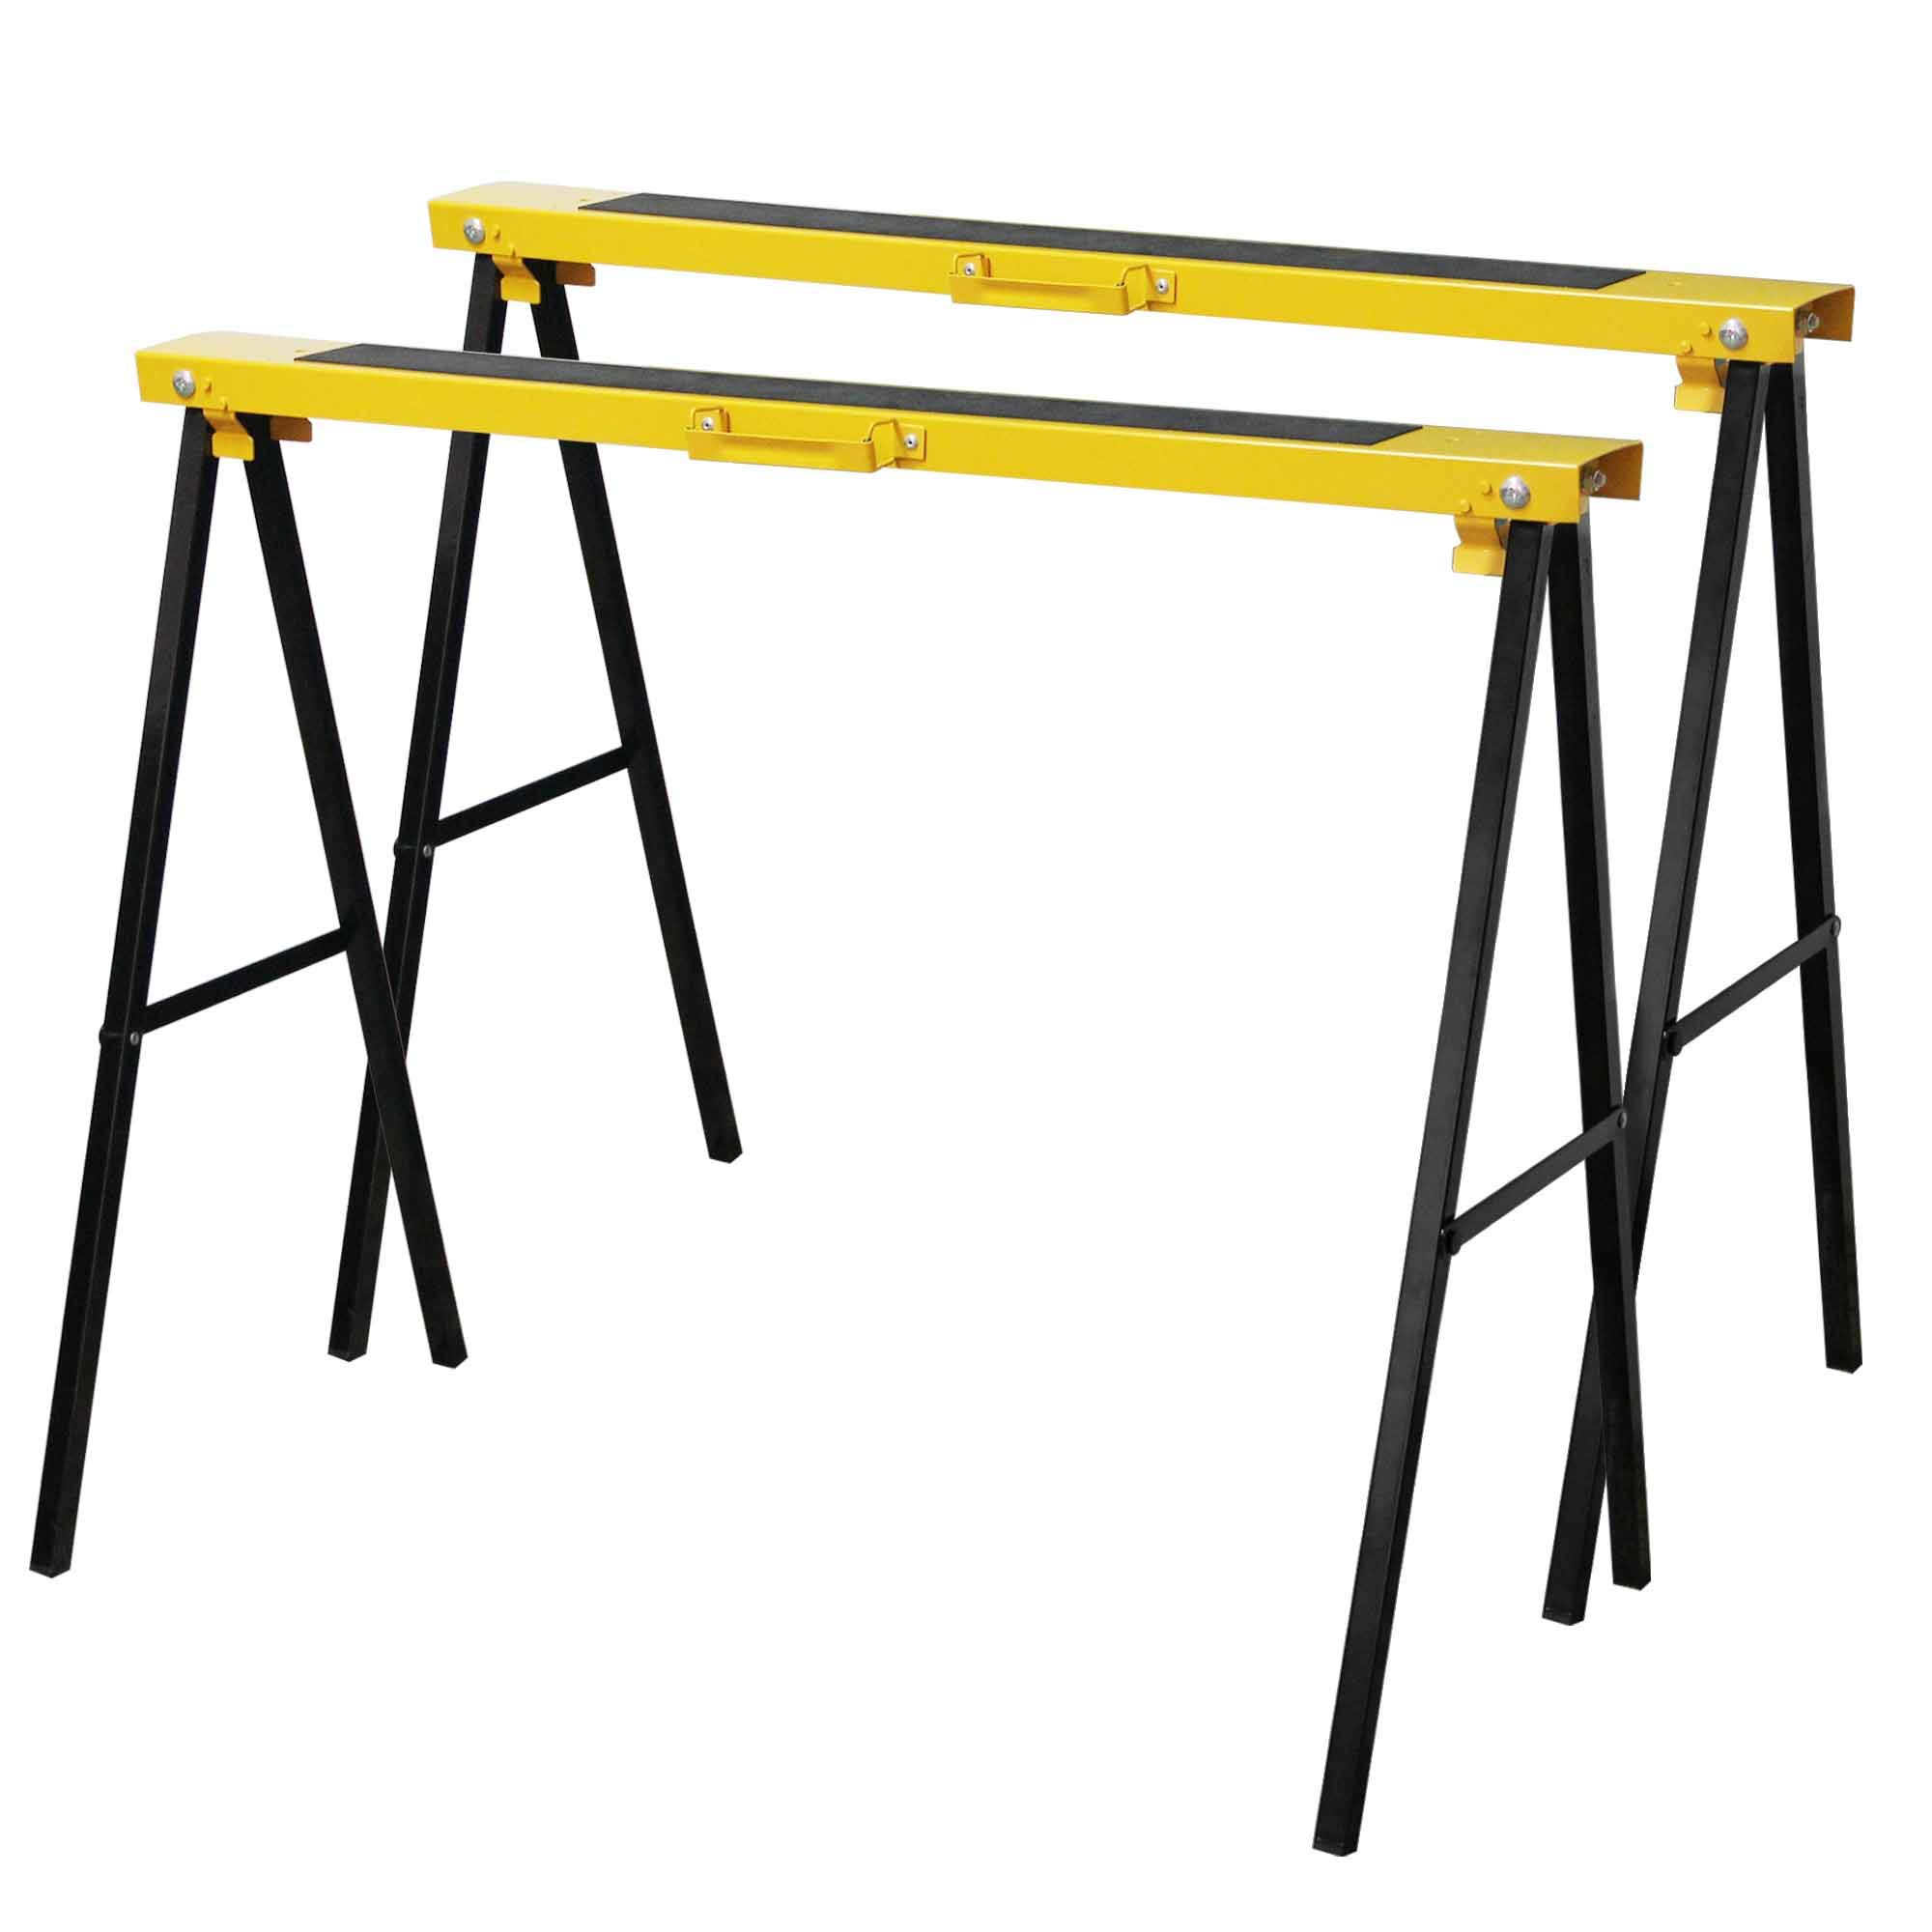 Forup Portable Folding Sawhorse, Heavy Duty Twin Pack, 275 lb Weight Capacity Each (2 Pack)